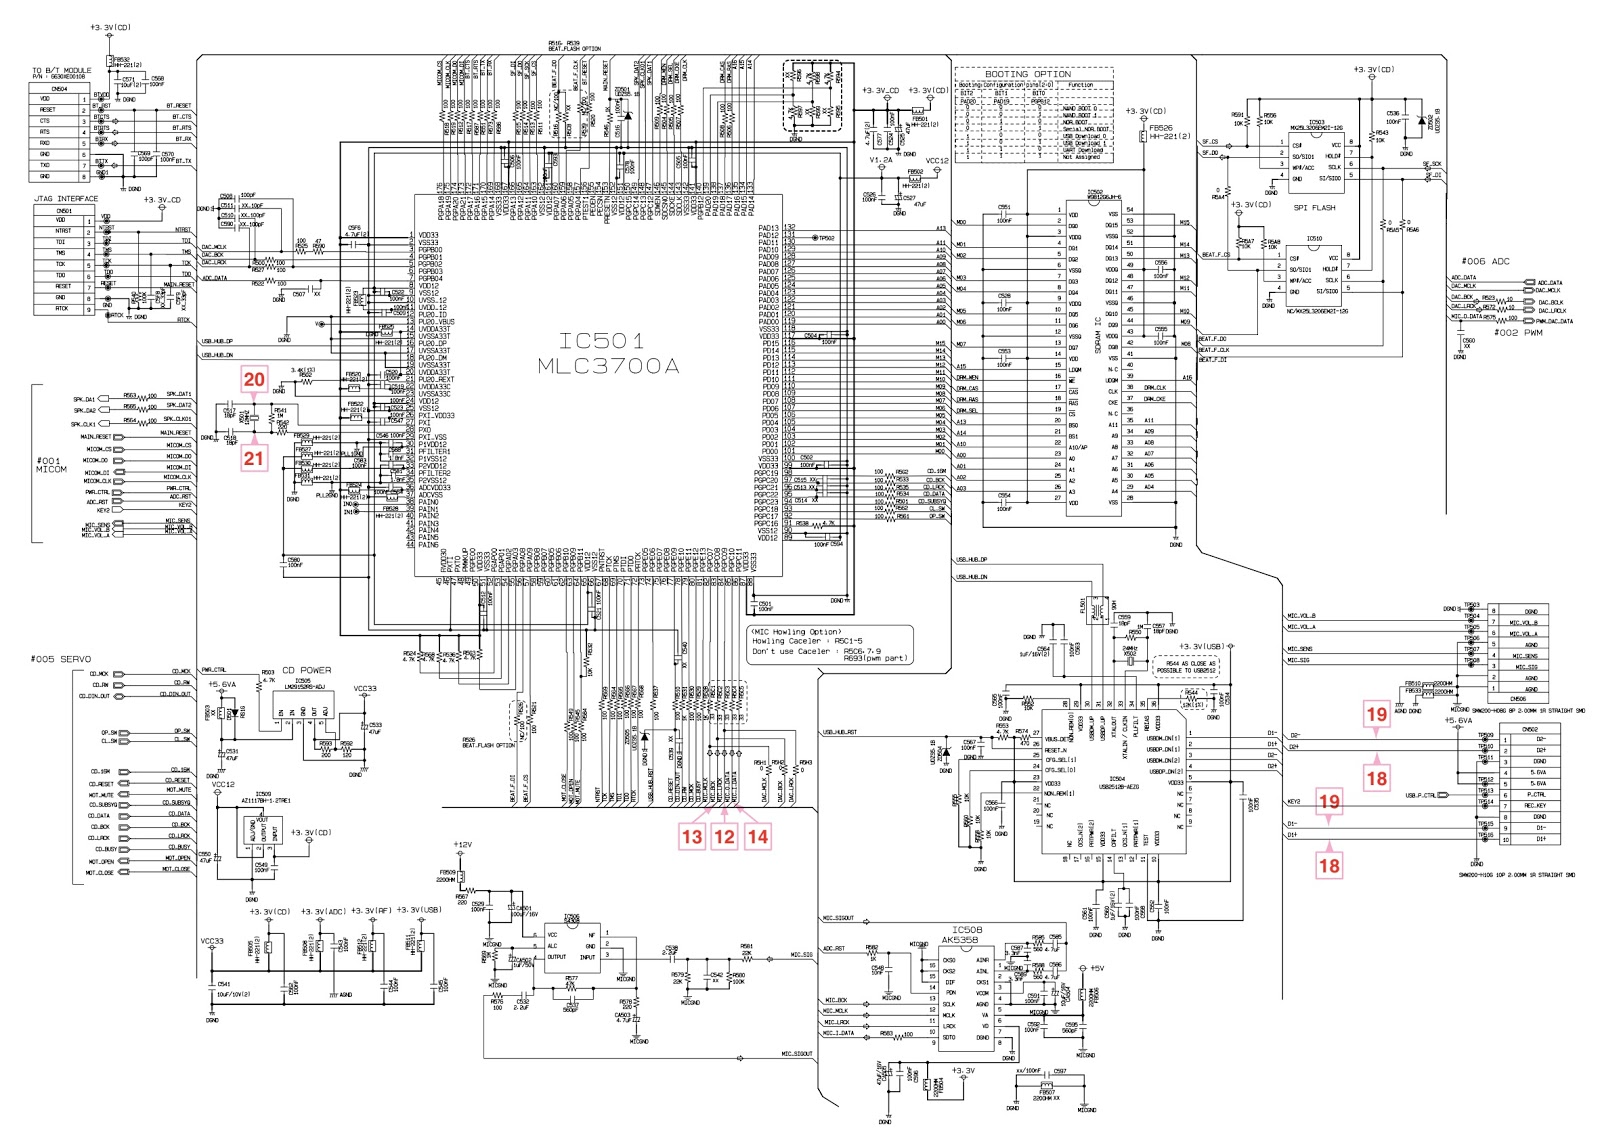 Lg Cm Smps And Main Amplifier Circuit Diagram